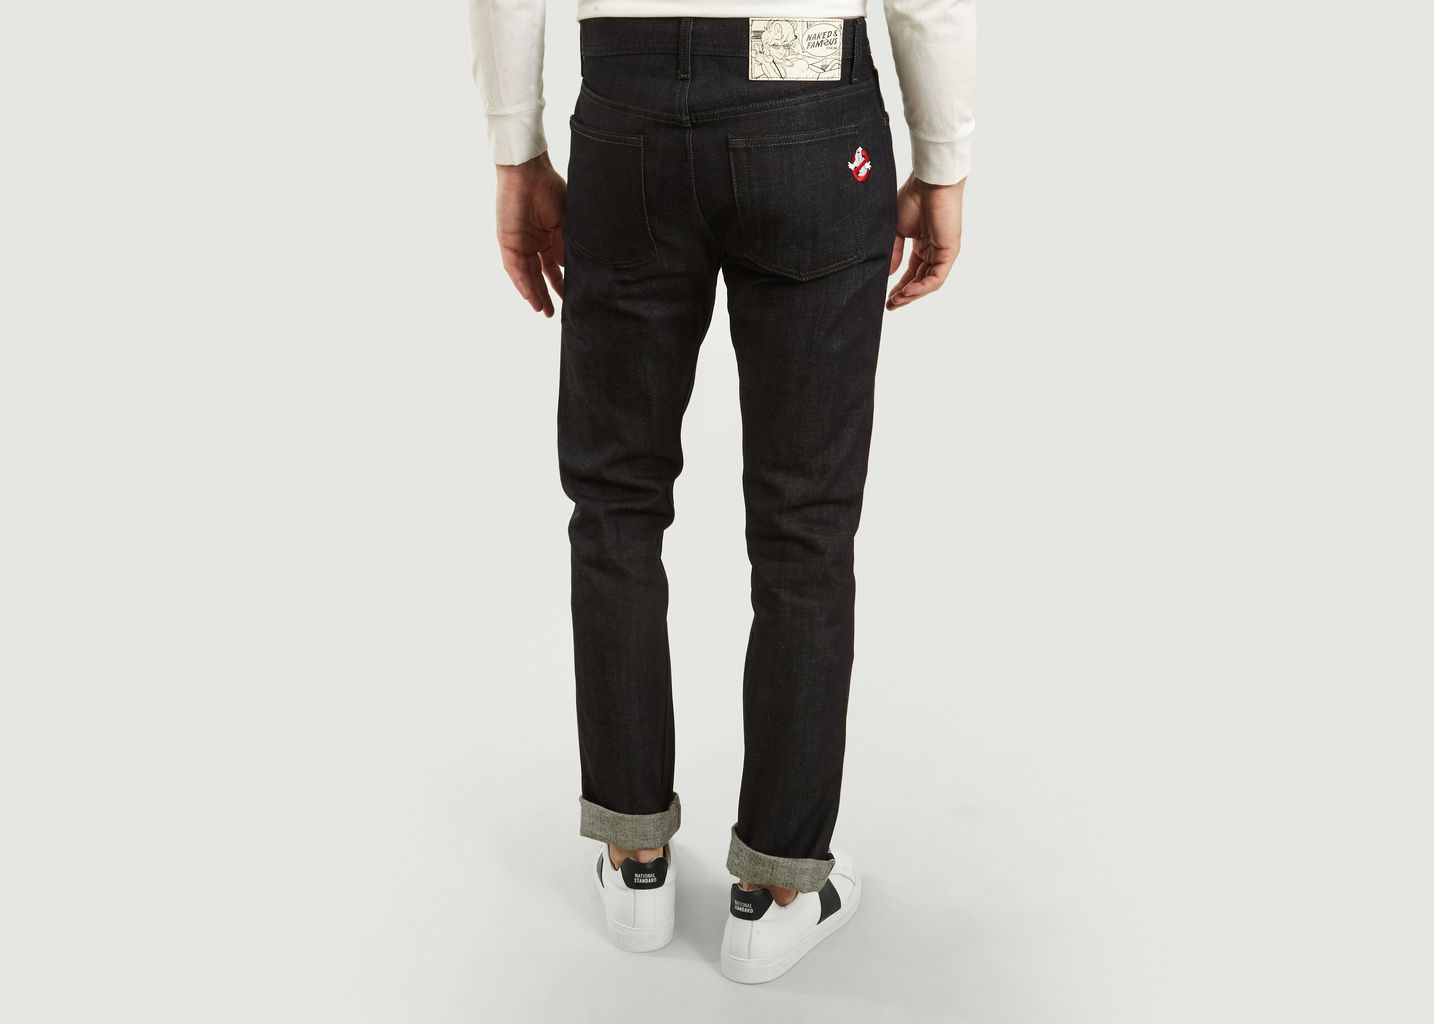 Jean Supernatural Selvedge x Ghost Busters - Naked and Famous